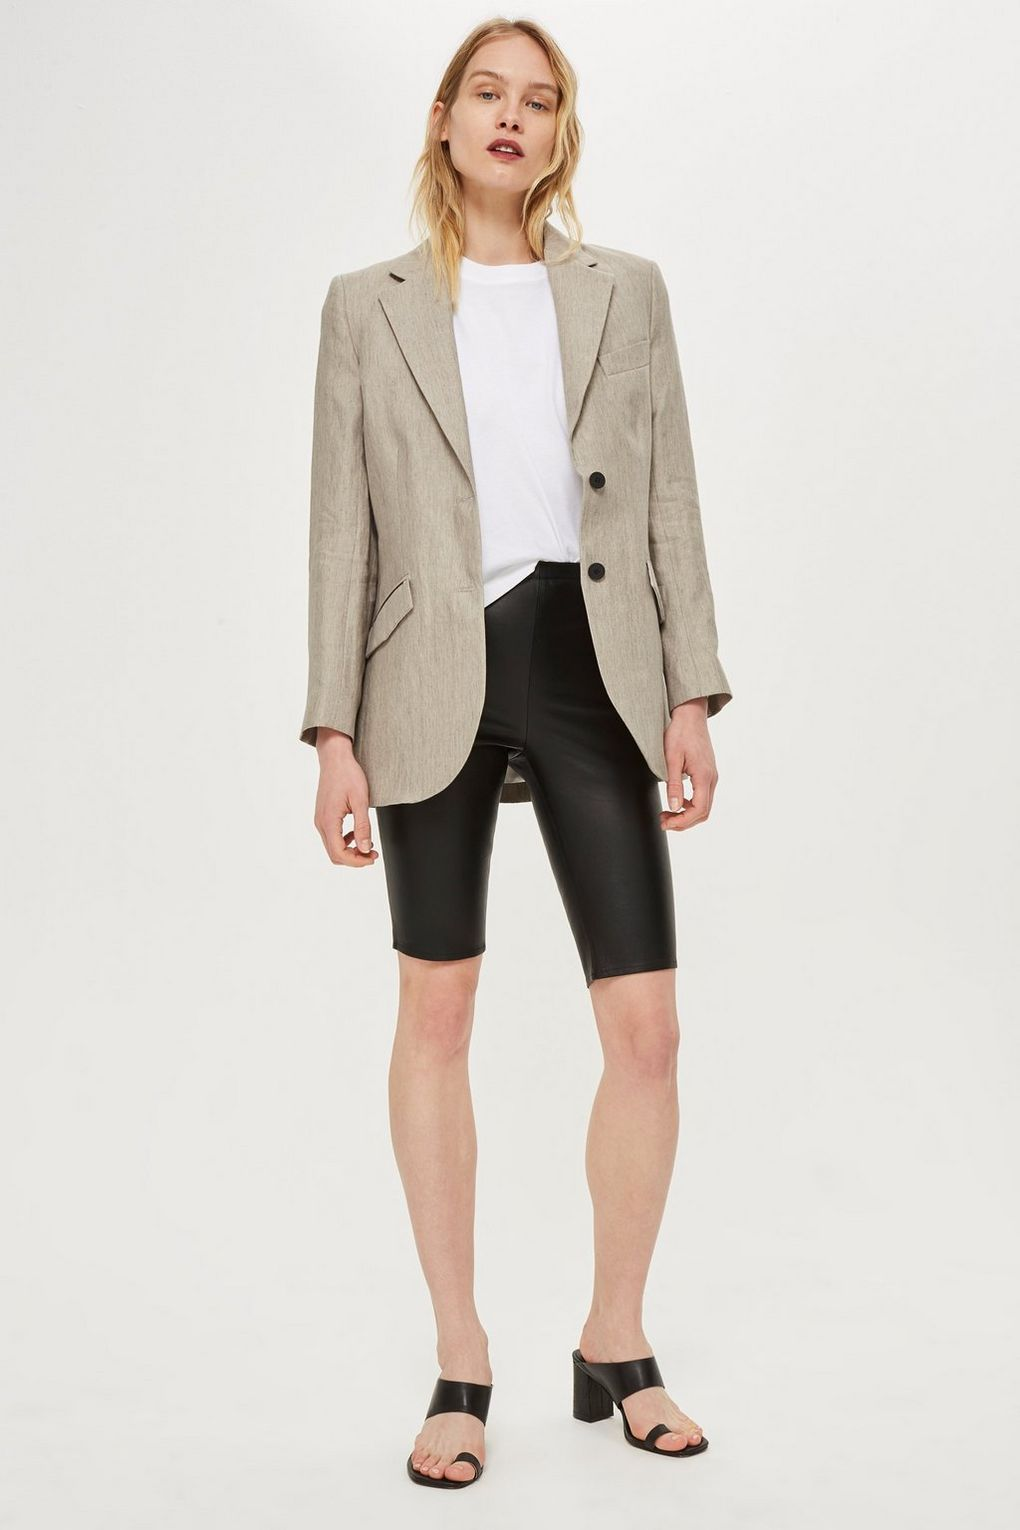 topshop-cycling-shorts-leather